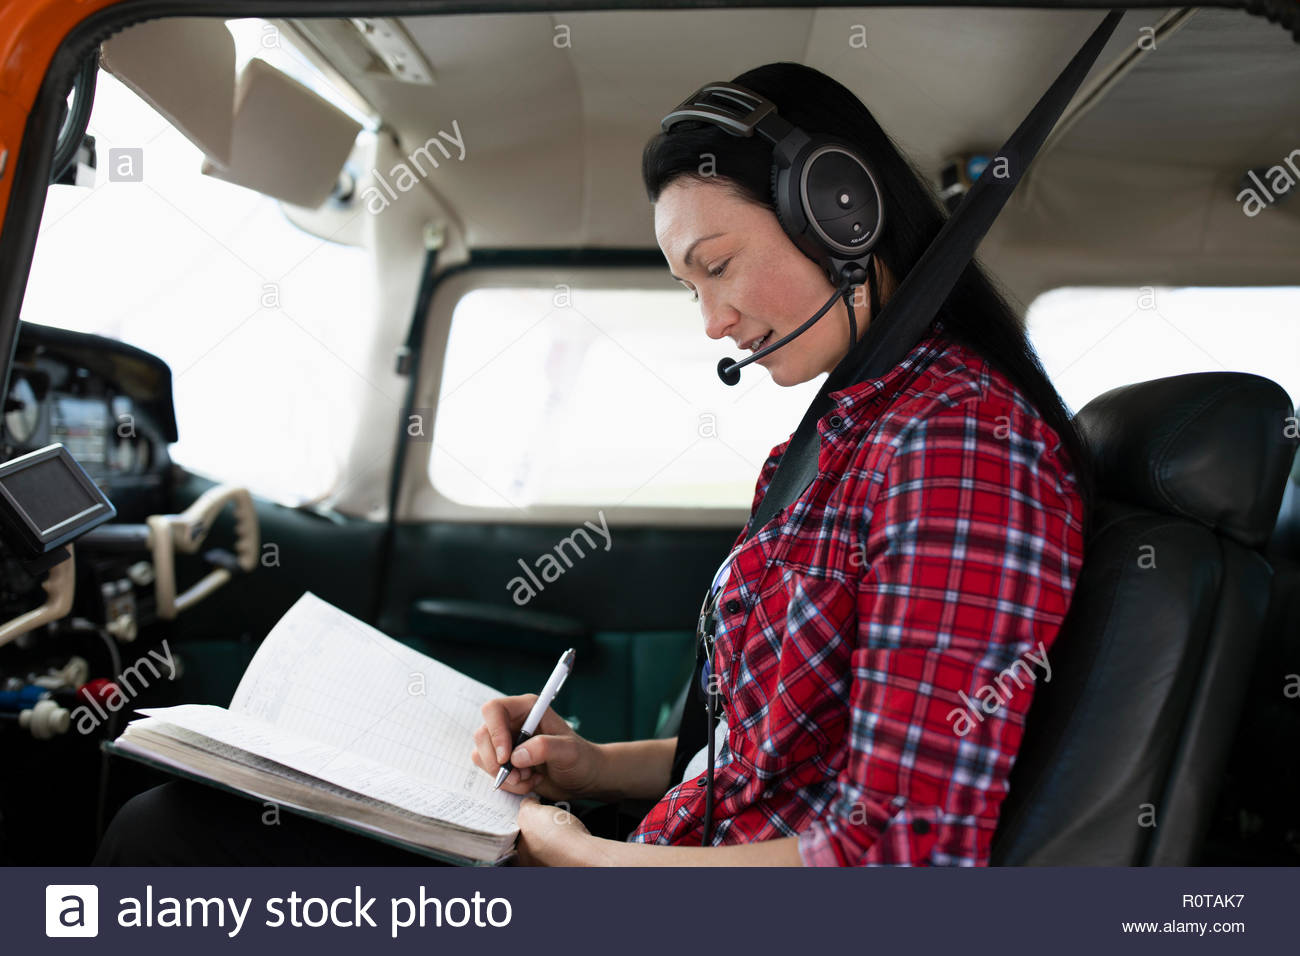 Female pilot filling out log book in airplane cockpit - Stock Image